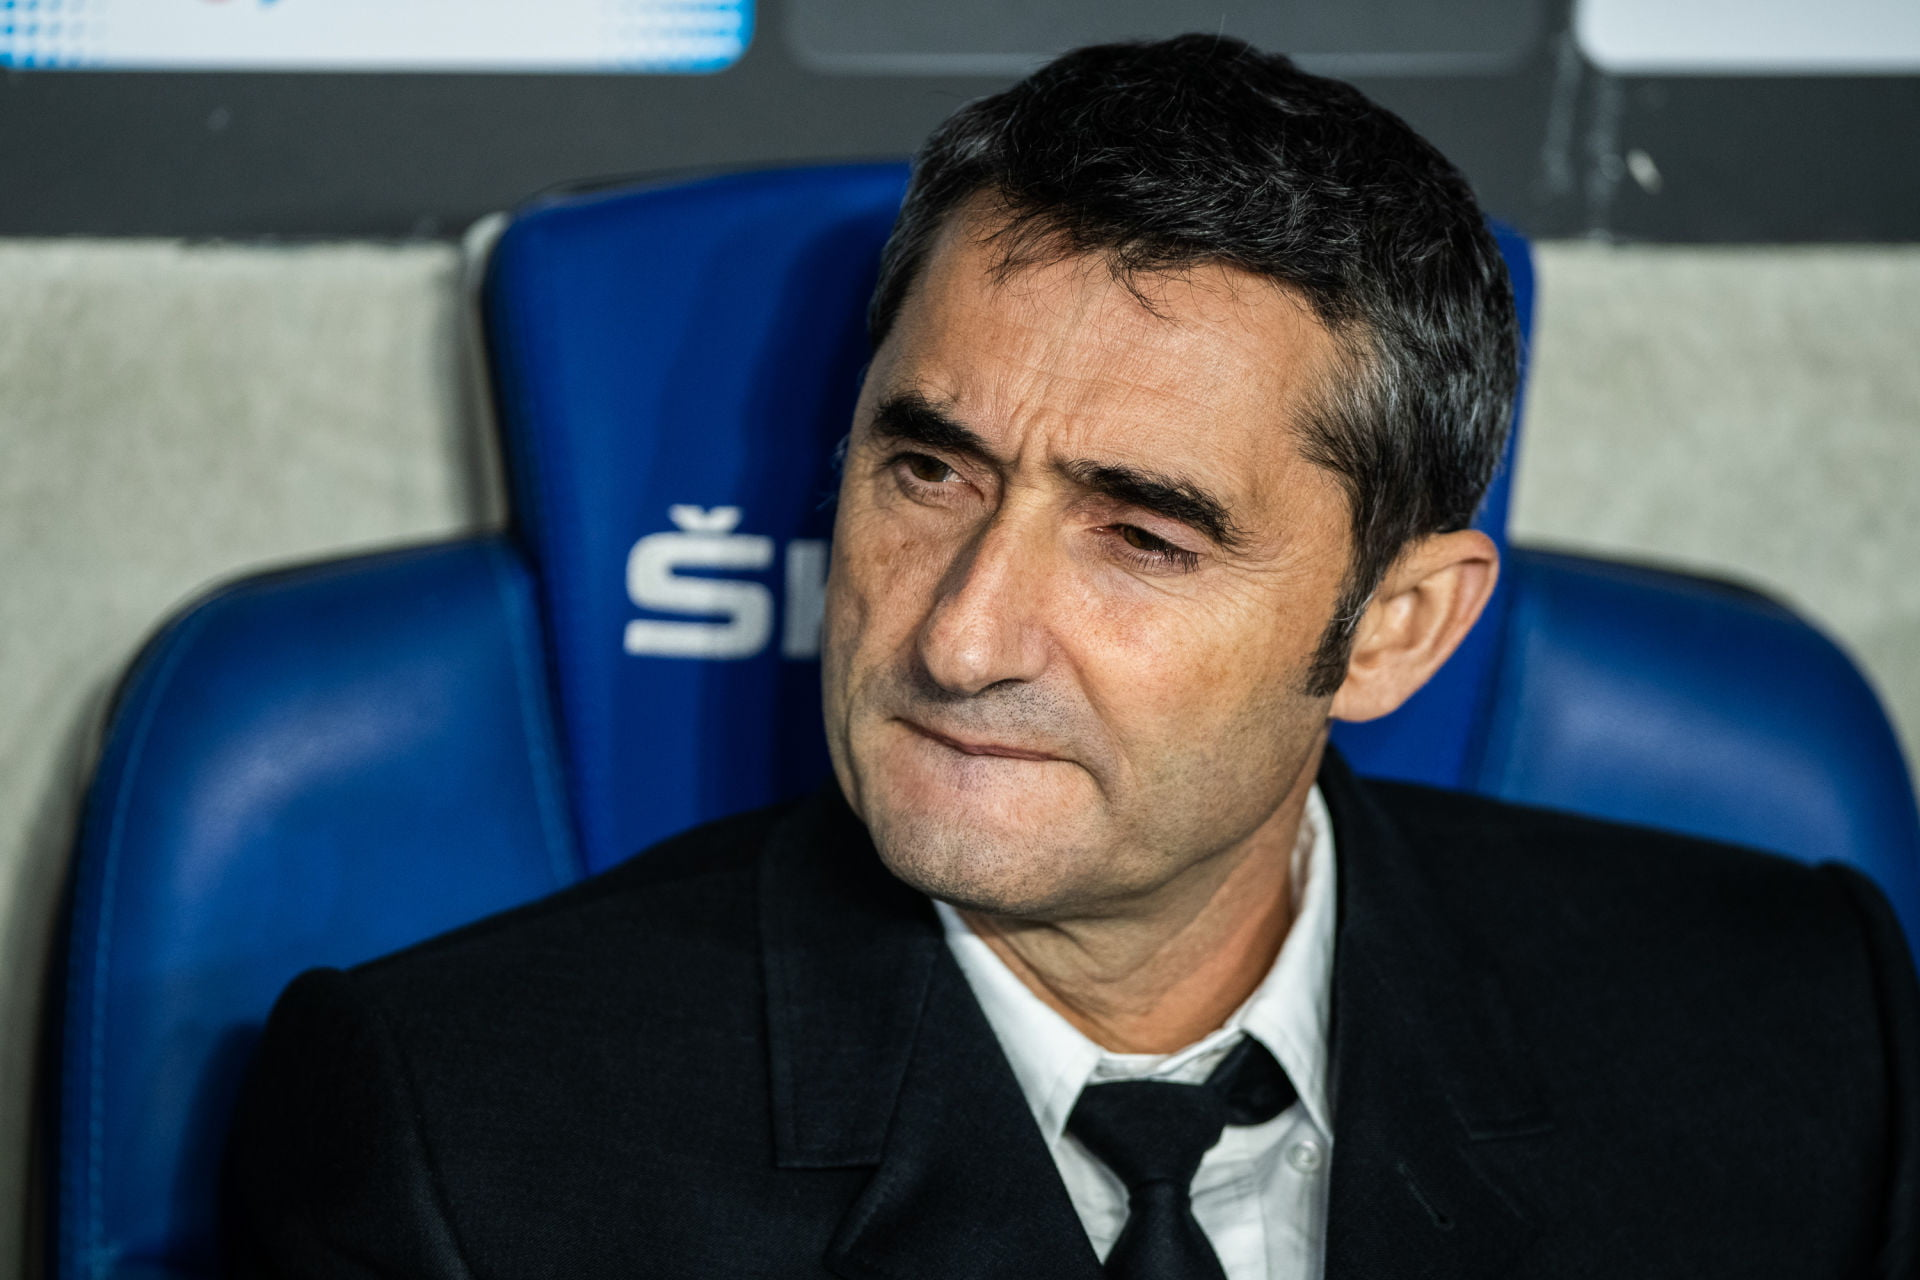 January 4, 2020, Barcelona, BARCELONA, SPAIN: SPAIN, BARCELONA, RCDStadium 4 January 2020; Valverde FCBarcelona coach during La Liga Santander match (Credit Image: © AFP7 via ZUMA Wire) FOT.ZUMA/NEWSPIX.PL POLAND ONLY!!! --- Newspix.pl *** Local Caption *** www.newspix.pl mail us: info@newspix.pl call us: 0048 022 23 22 222 --- Polish Picture Agency by Ringier Axel Springer Poland